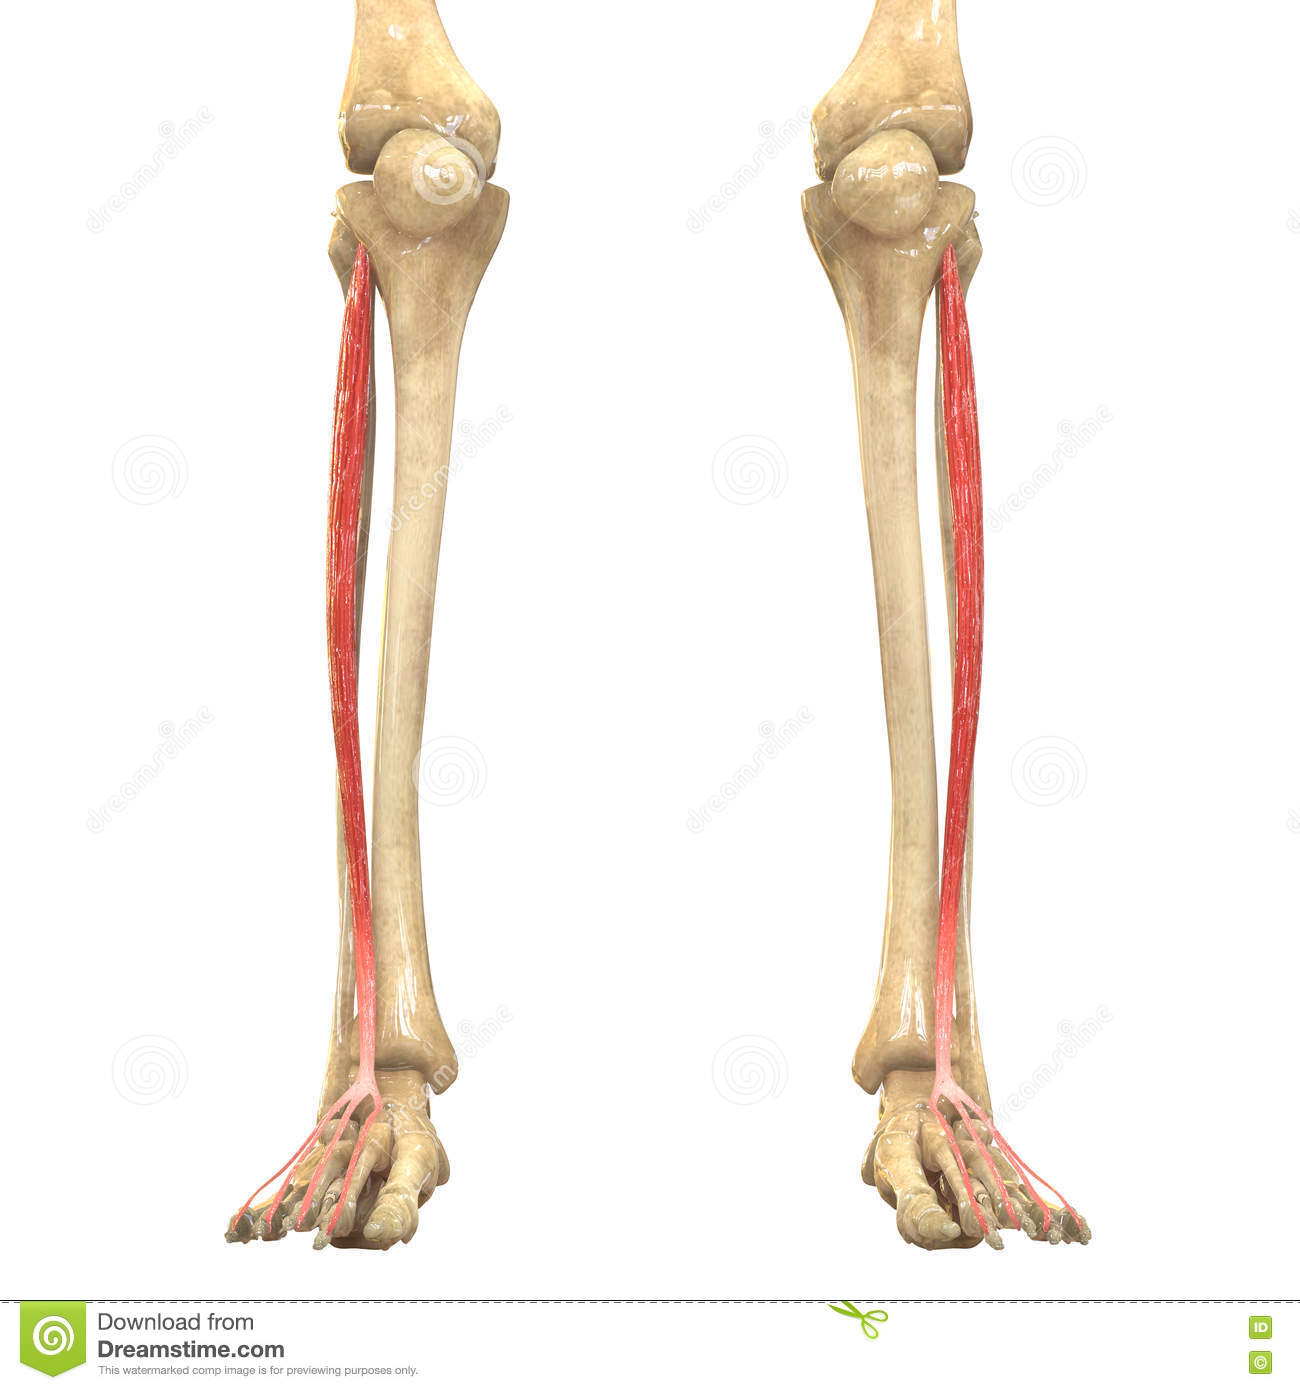 human body muscles anatomy (extensor digitorum longus) stock, Human Body